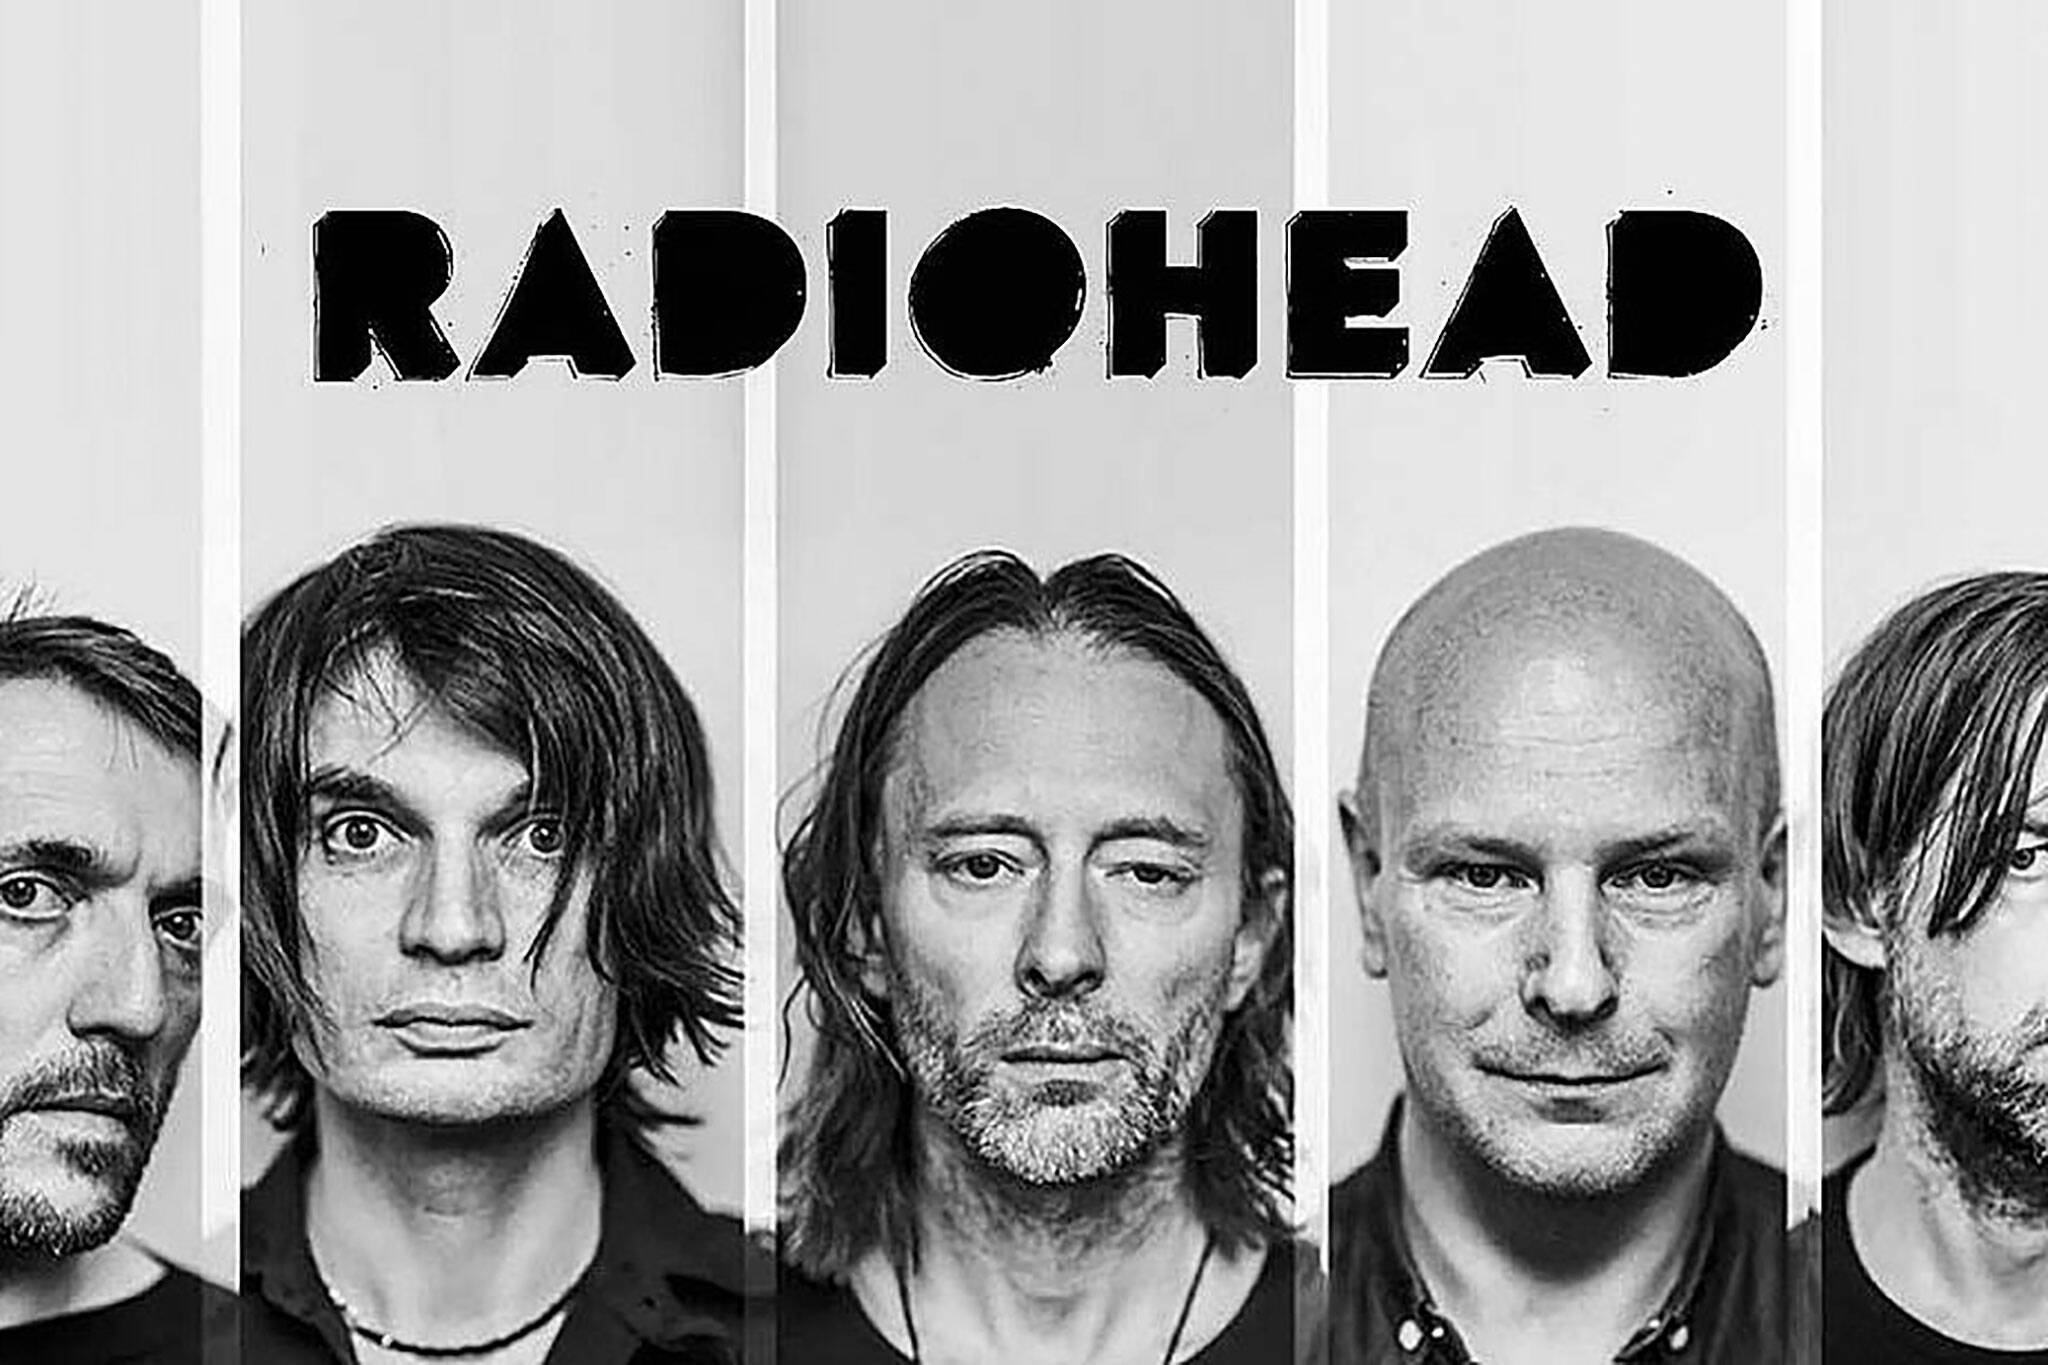 Toronto upset after Radiohead concert sells out in seconds